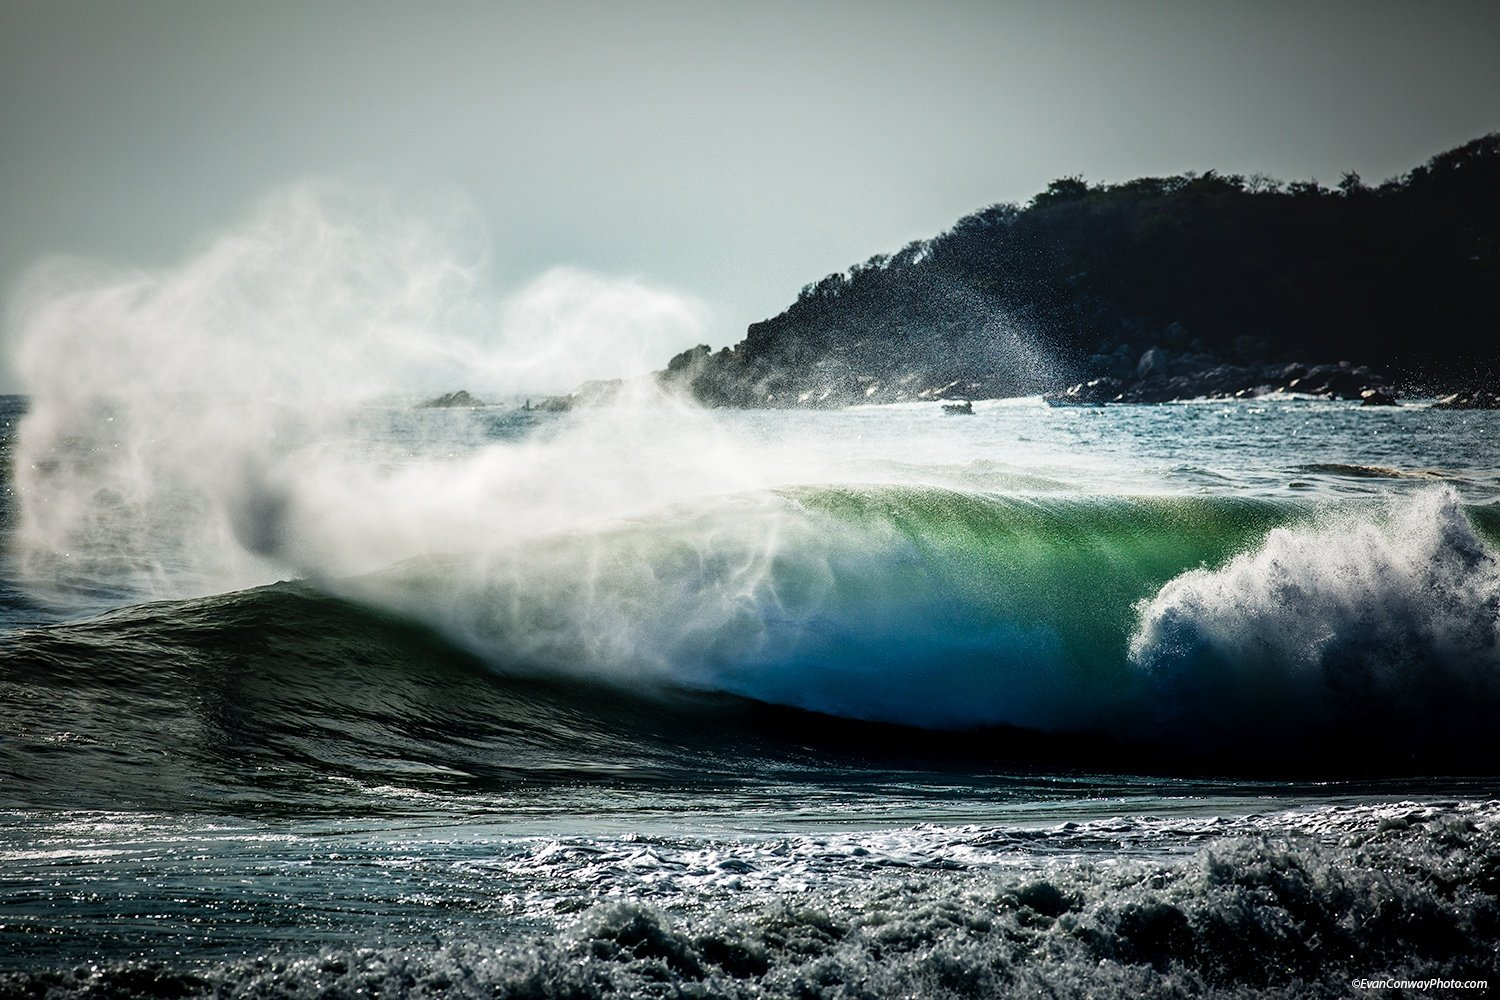 Evan Conway's photo of Puerto Escondido